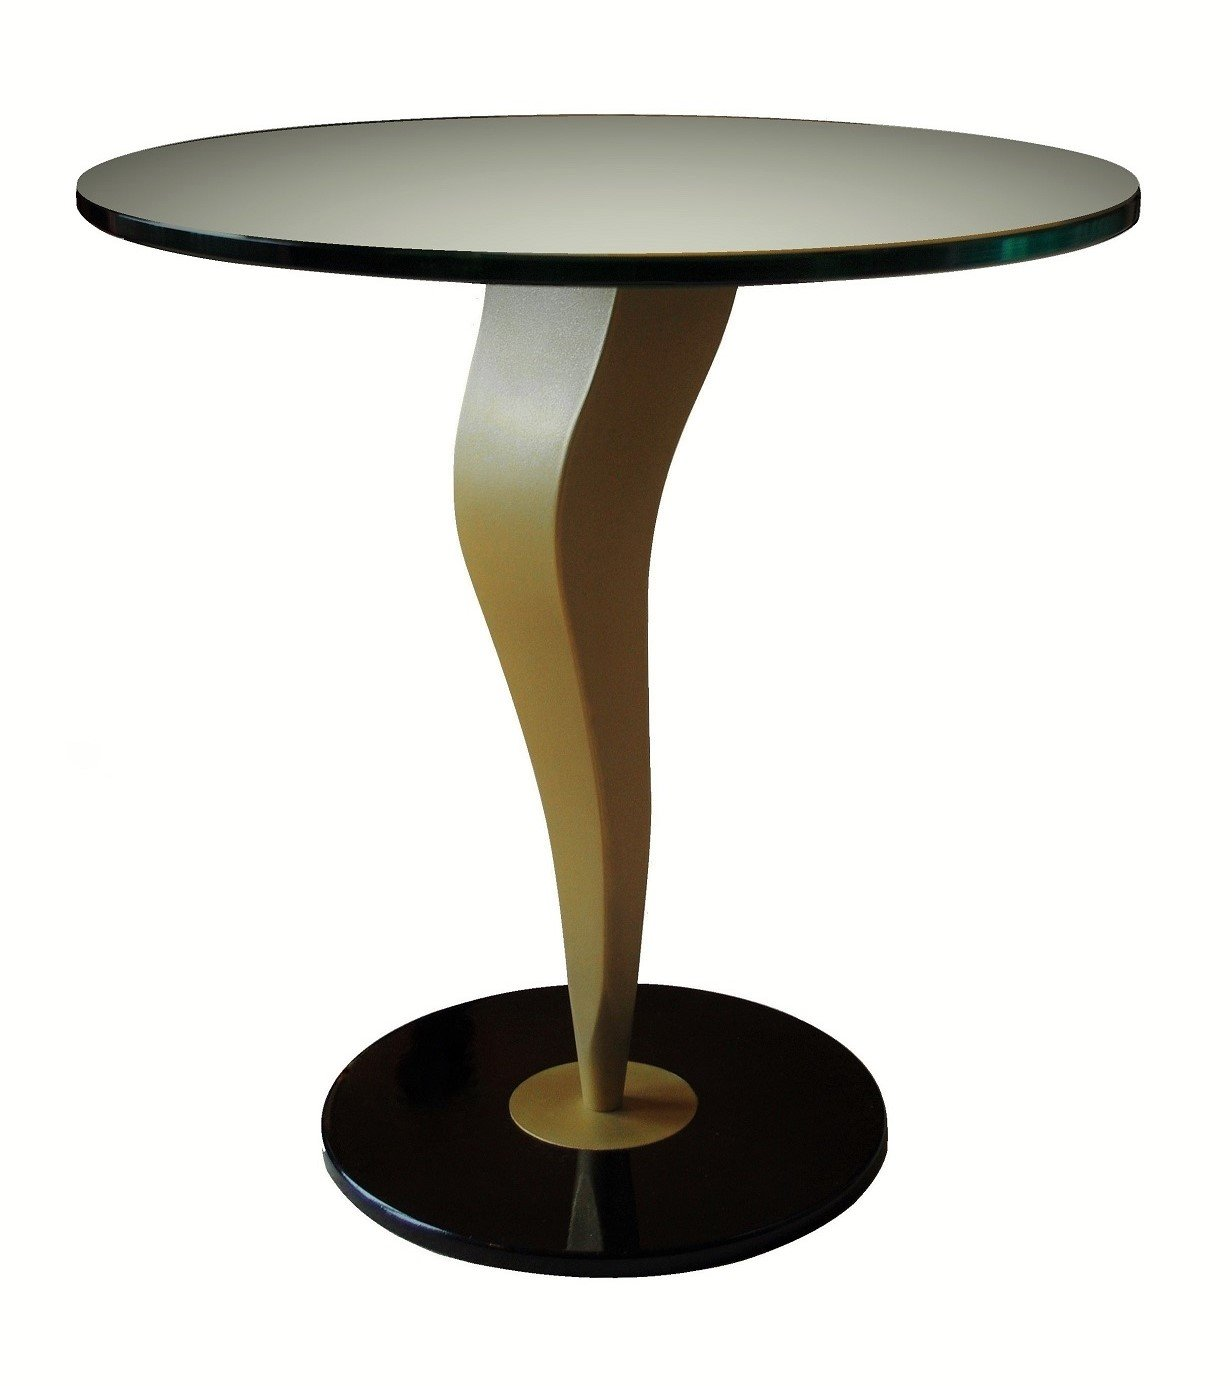 Thermal metal finishes. Inspiration side table - brass AM.4